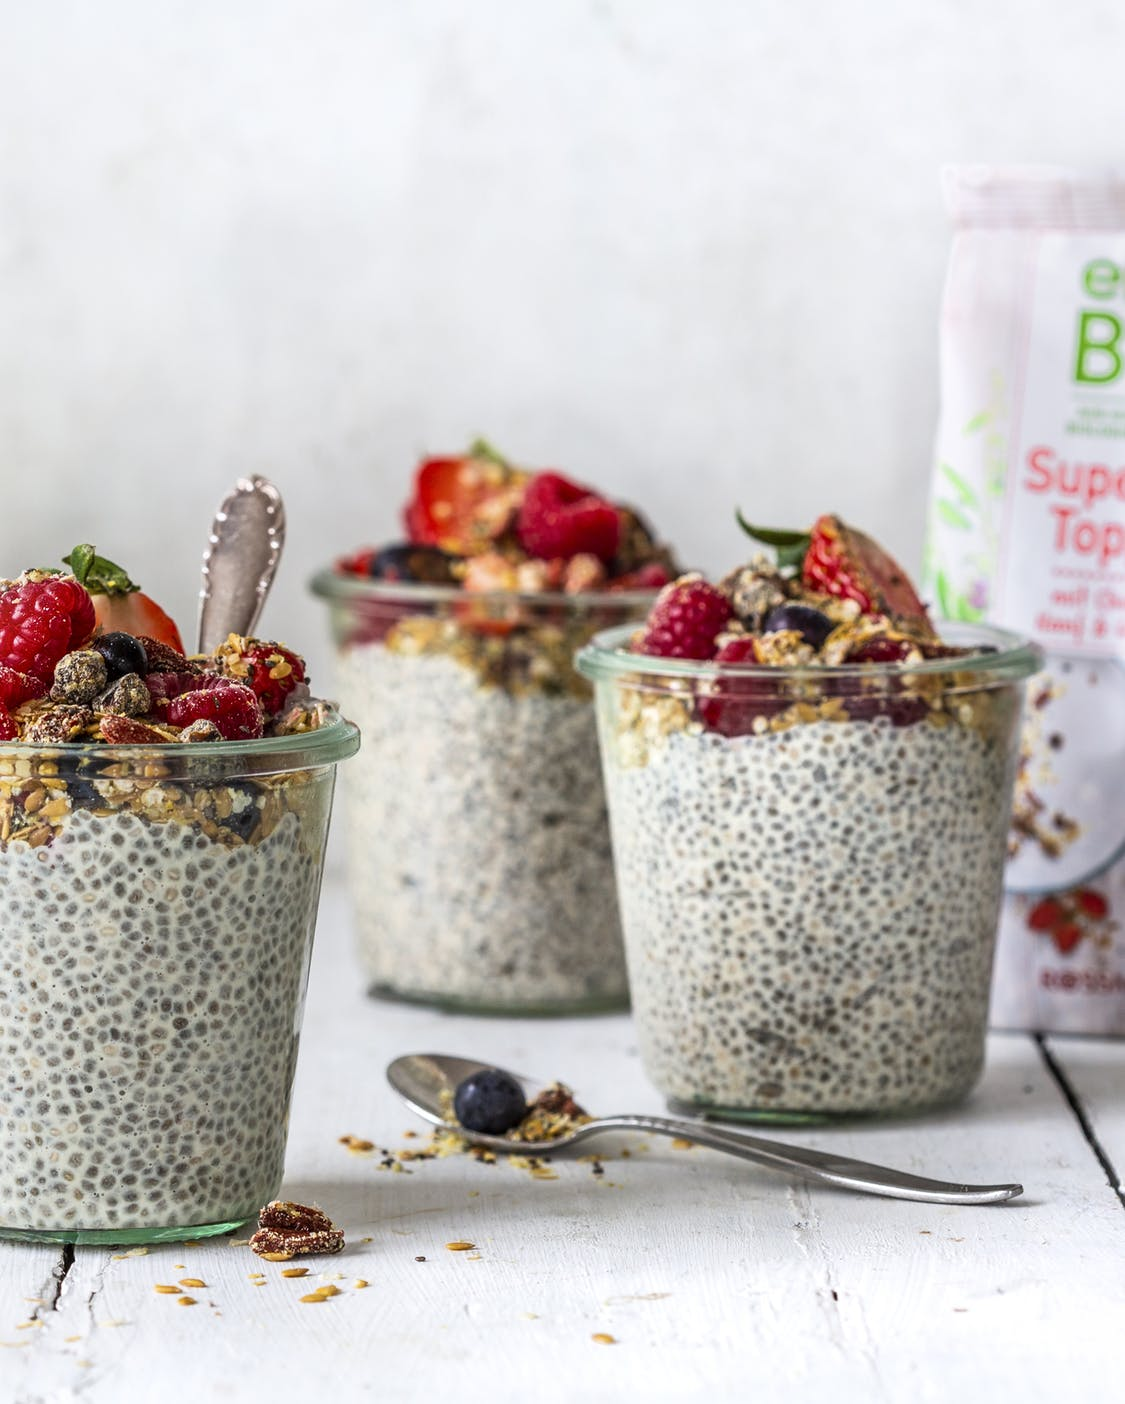 Chia-Pudding mit Superfood Topping